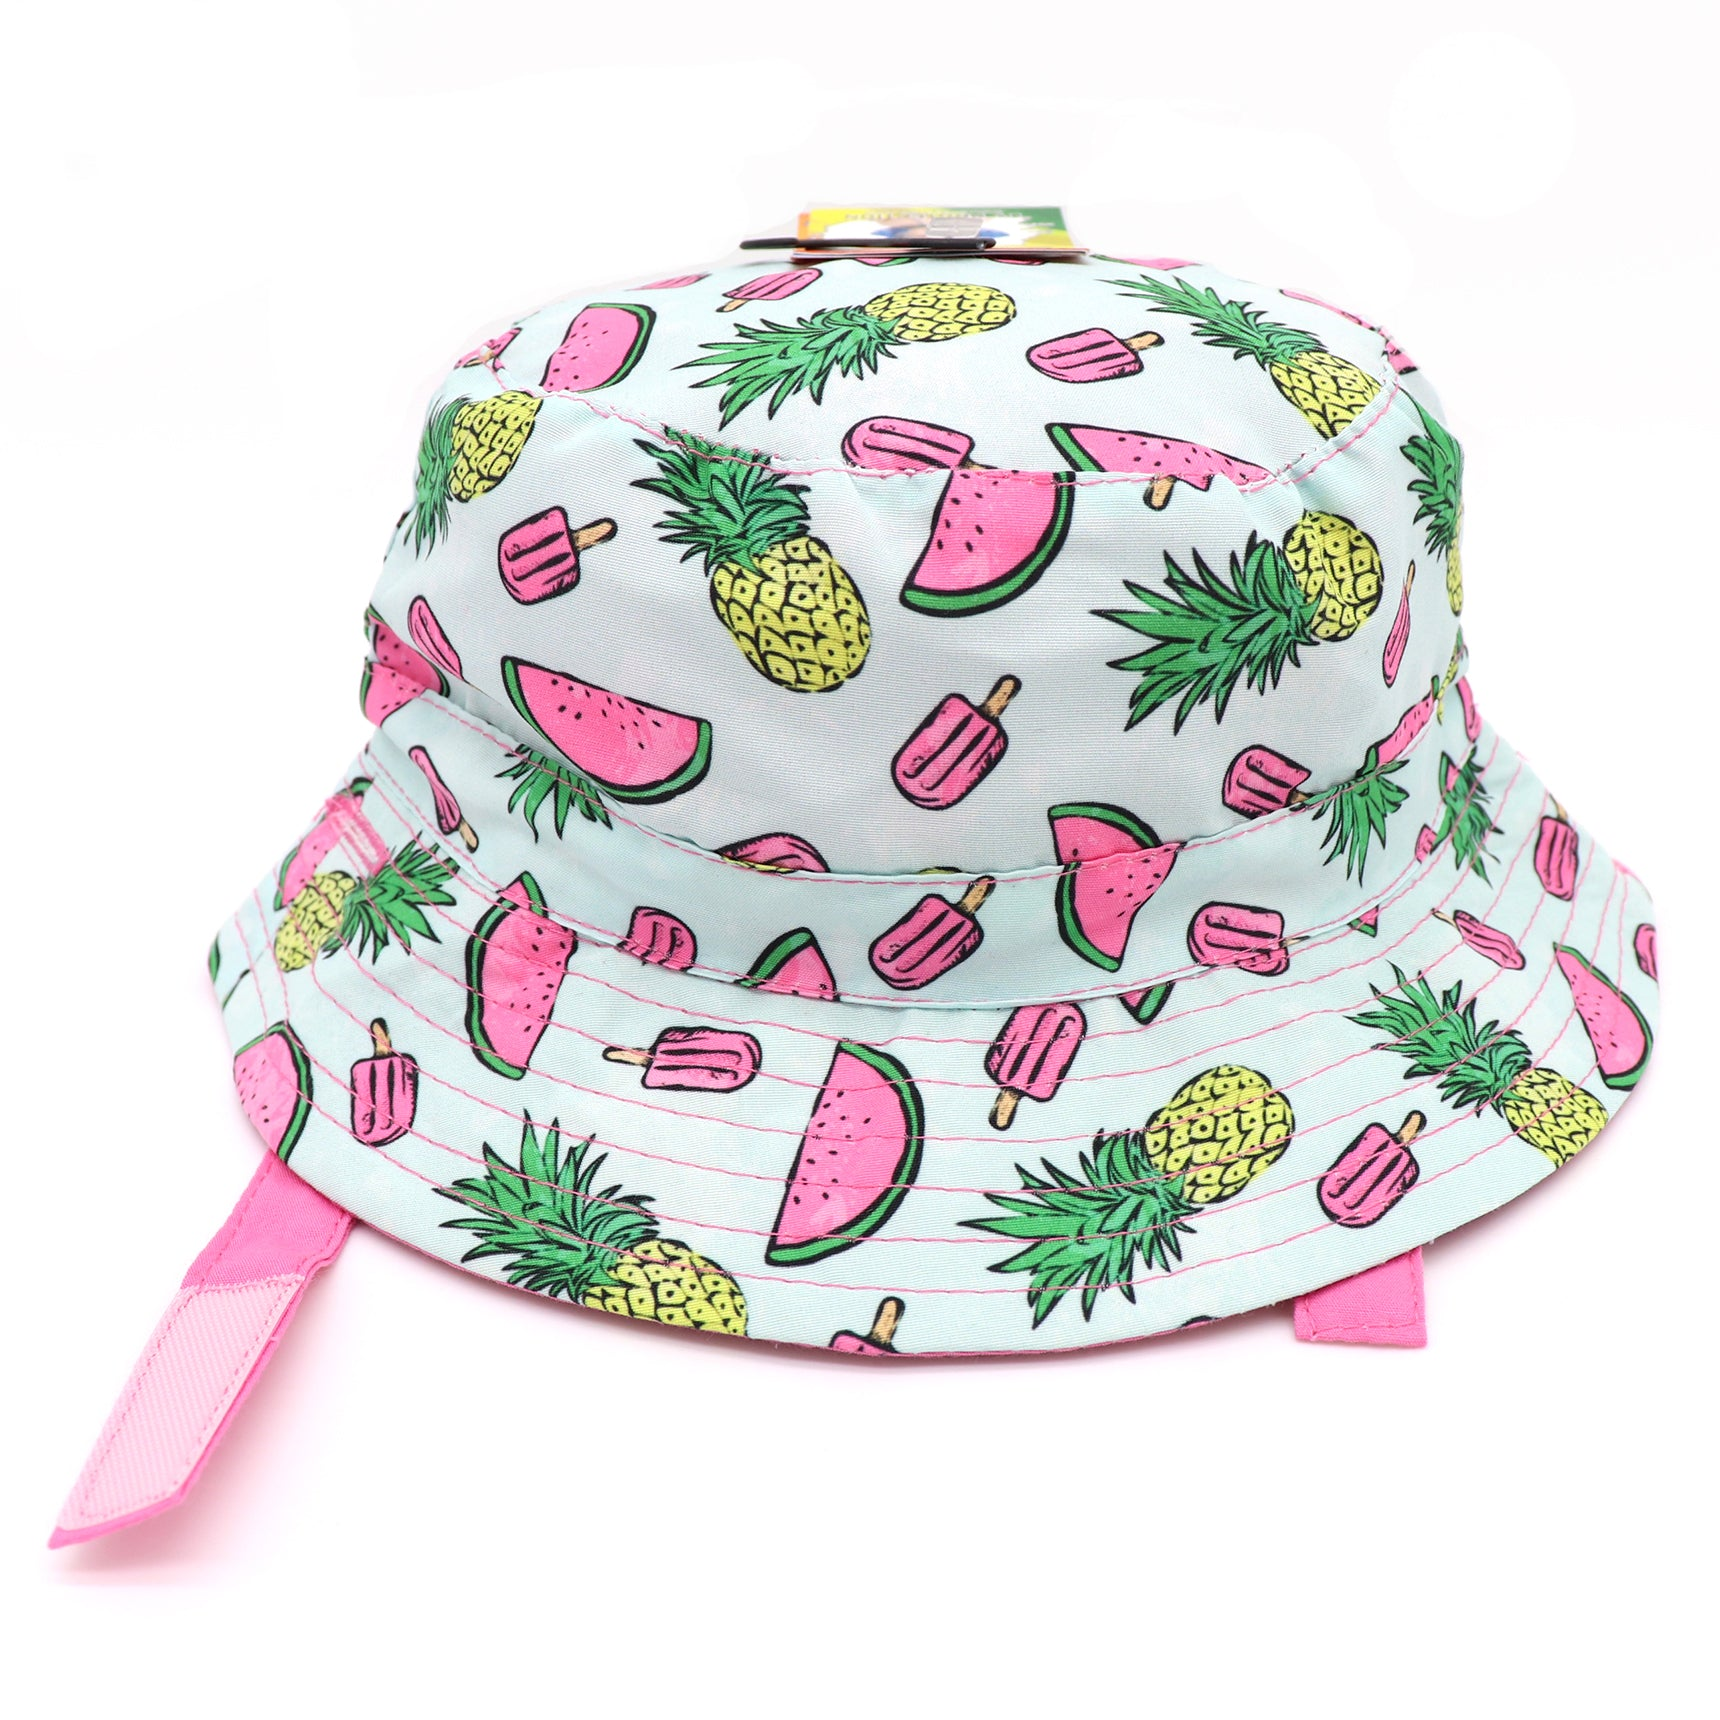 Kids bucket hat with built in UV protection, UPF 50+ for infants, toddler, and small children. Built in sun protection. Lightweight hat for sunny days, beach, pool, zoo, and playdates. White hat featuring summer watermelon, pink popsicles, and pineapples  with pink velcro straps. Reverses to solid soft pink hat.